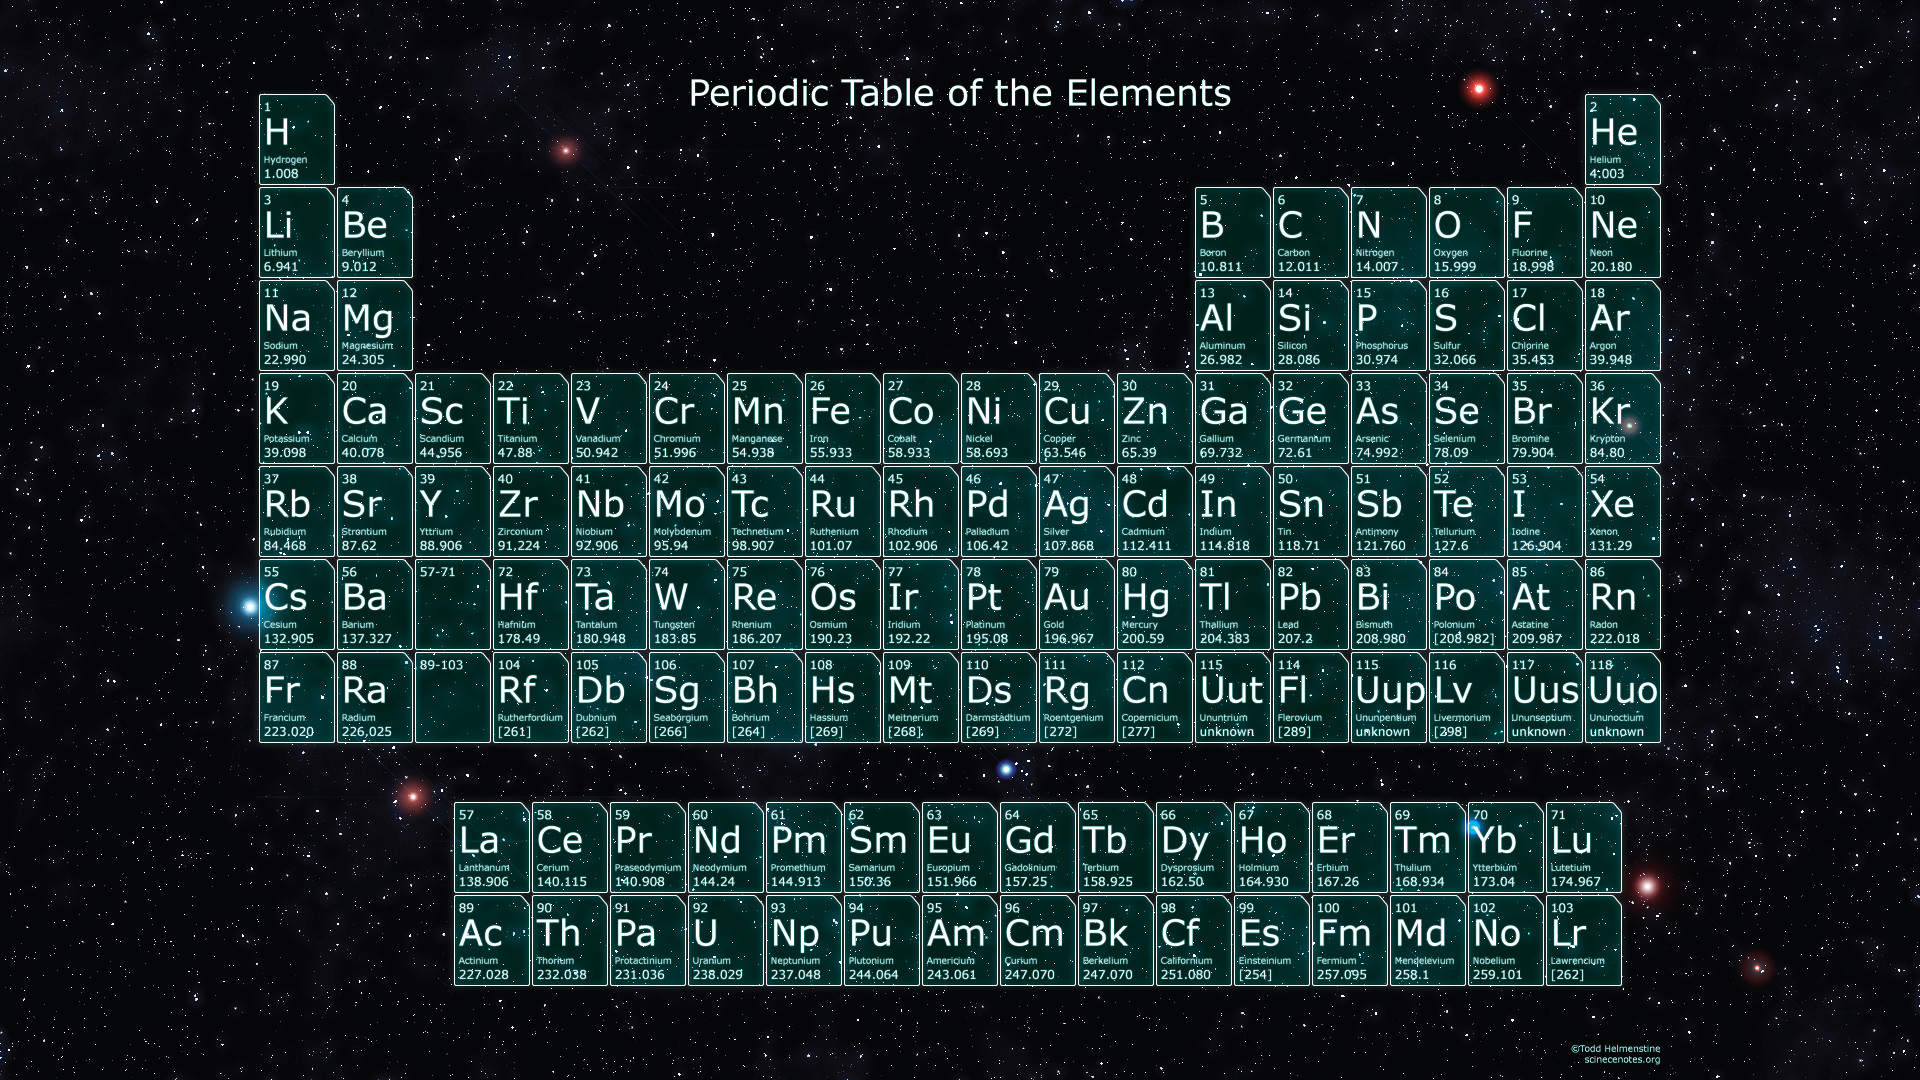 Cool Science Images, Top on GuoGuiyan.com